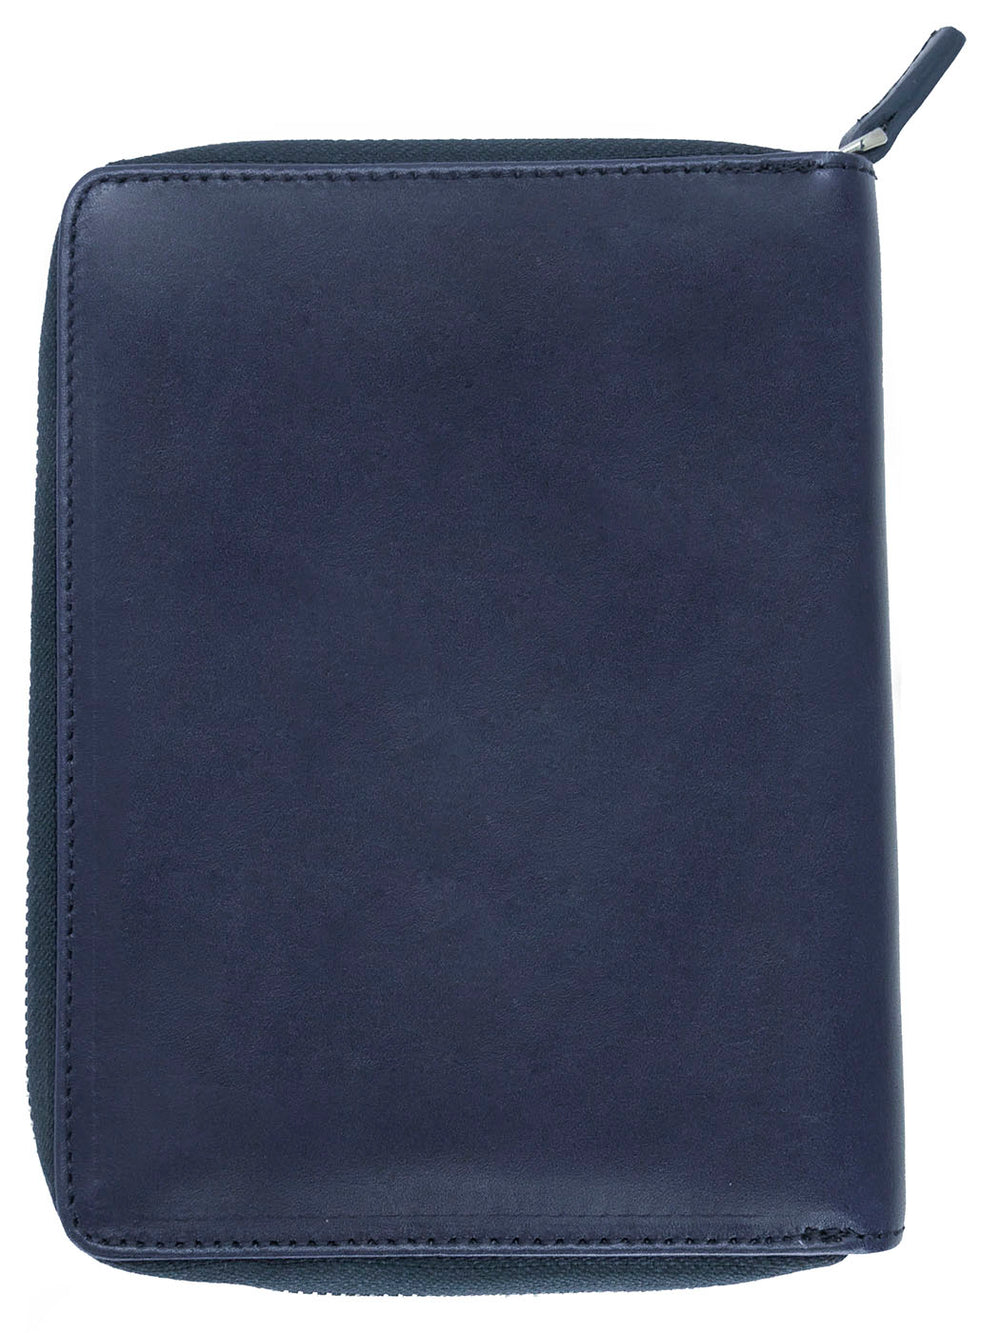 Galen Leather Co. Zippered 5 Slot Pen Case- Navy